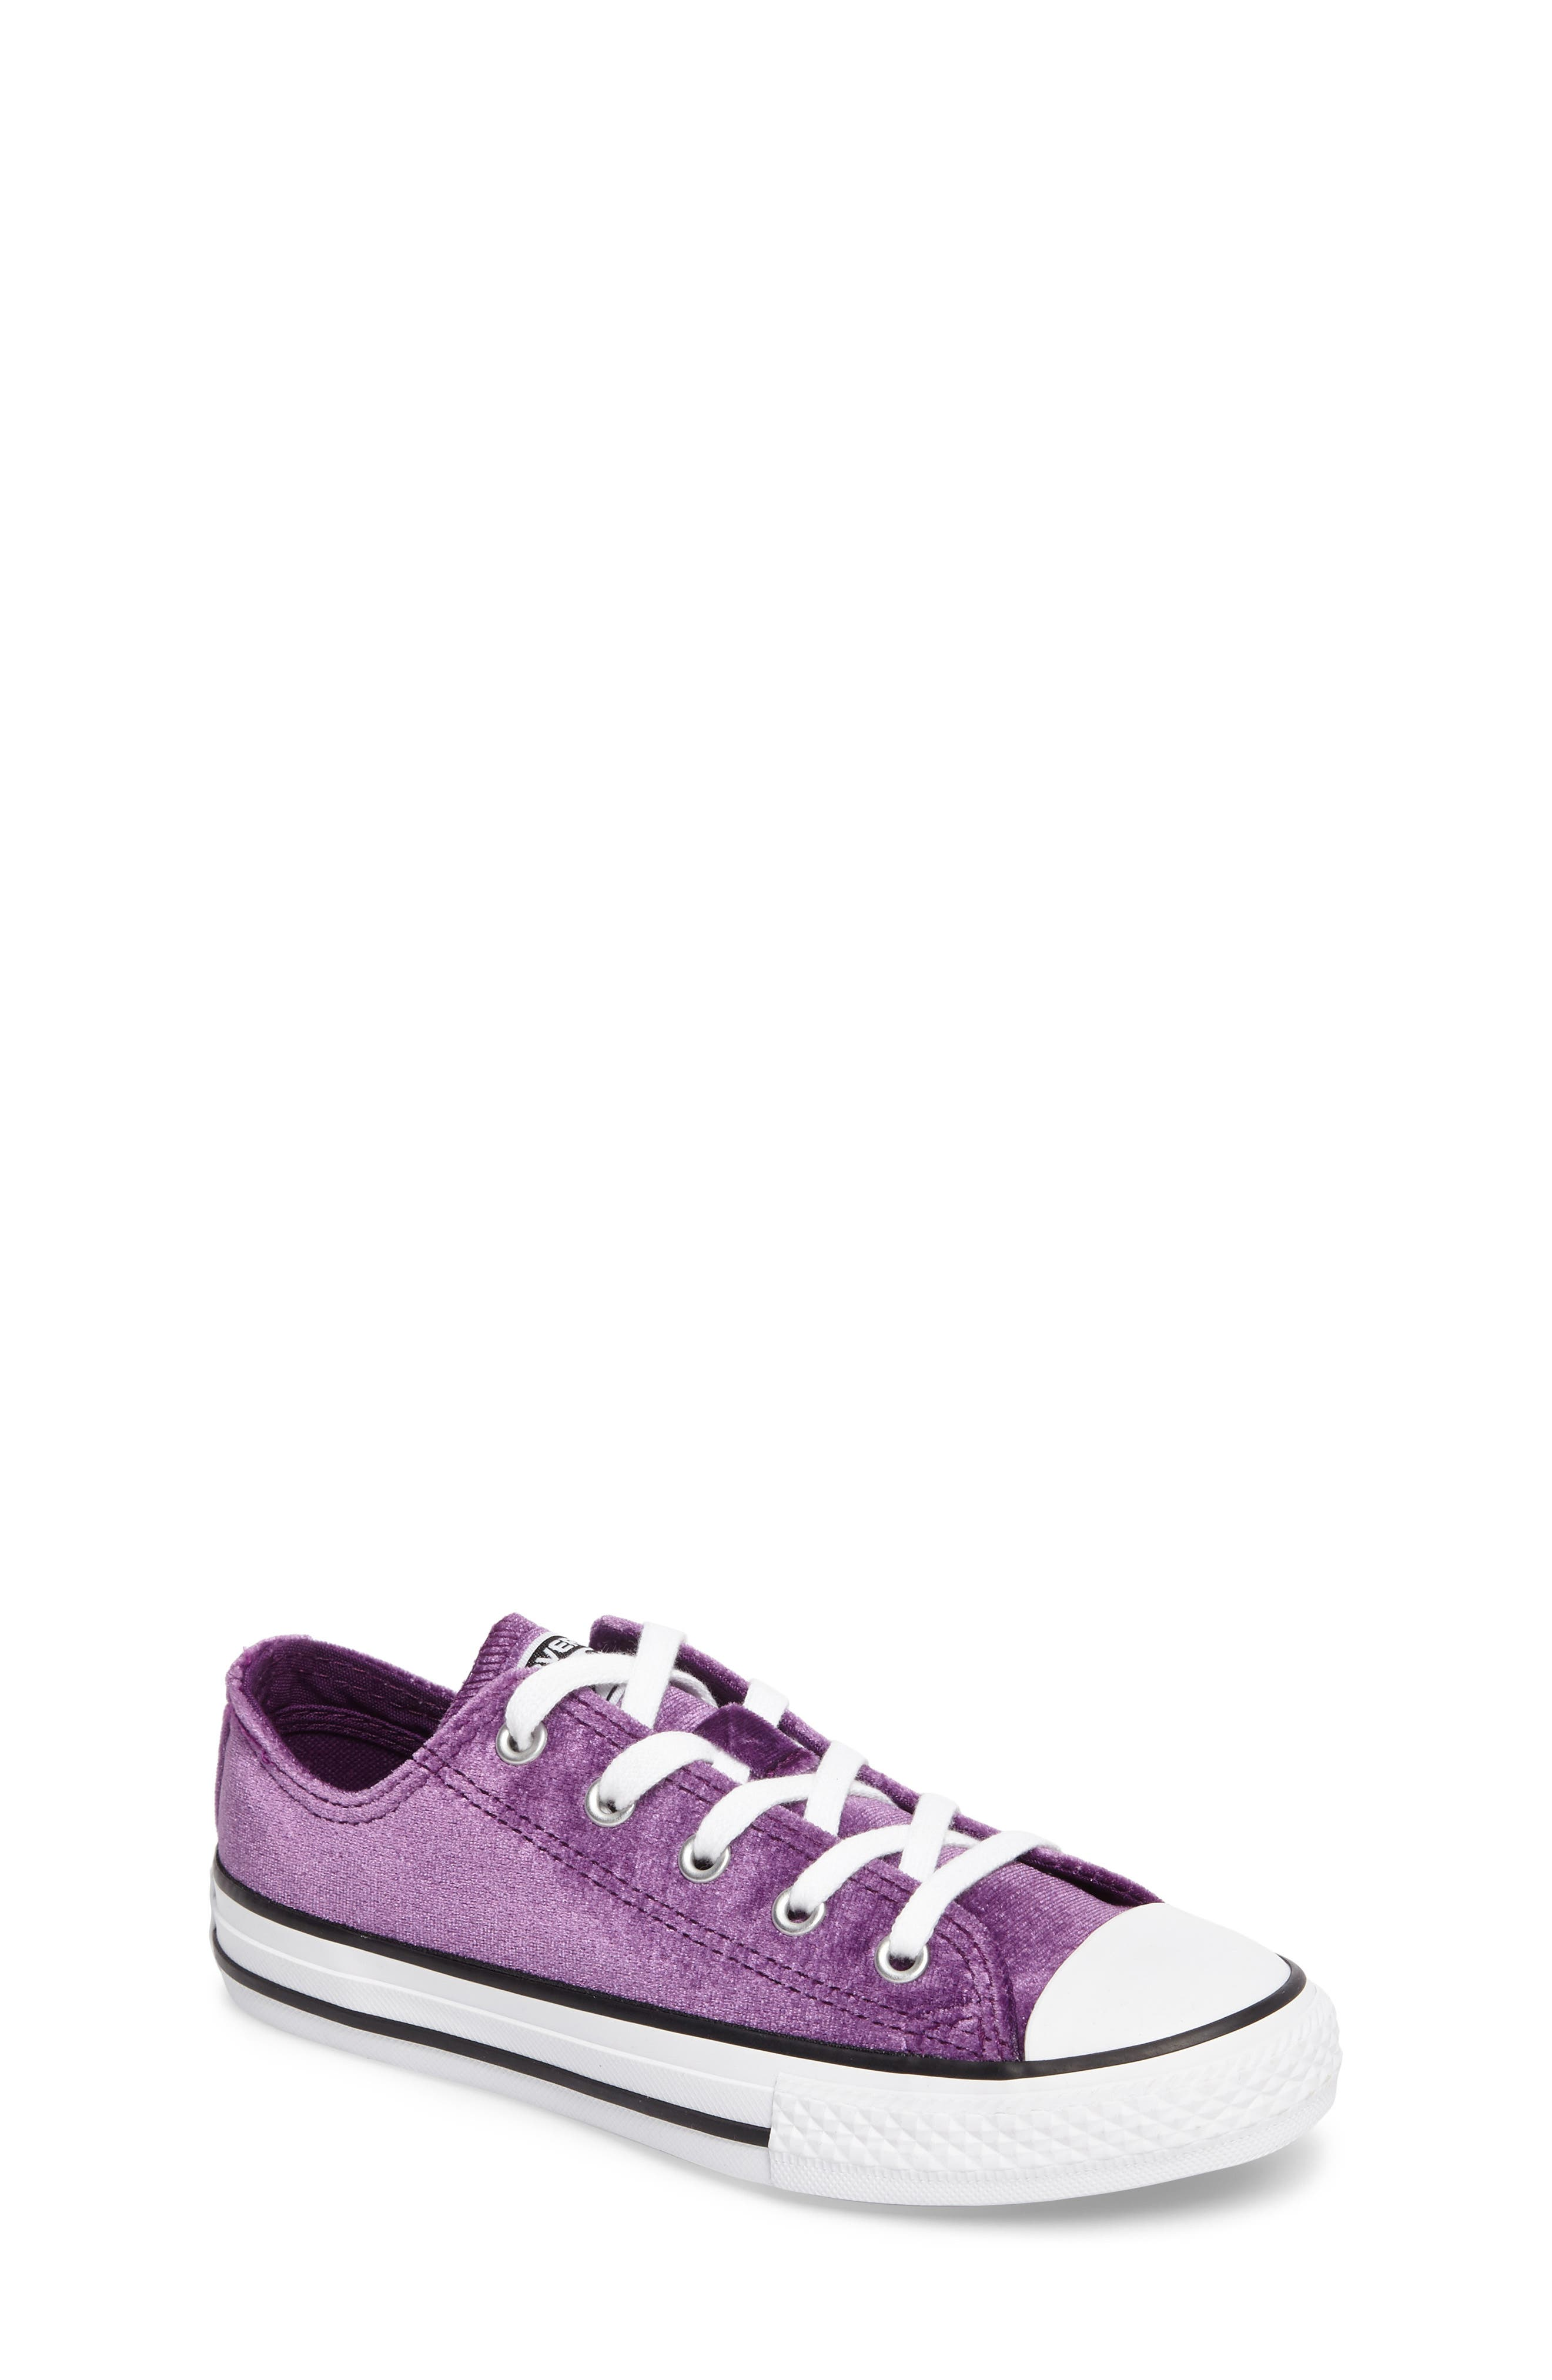 Chuck Taylor<sup>®</sup> All Star<sup>®</sup> Velvet OX Low Top Sneaker,                             Main thumbnail 1, color,                             500